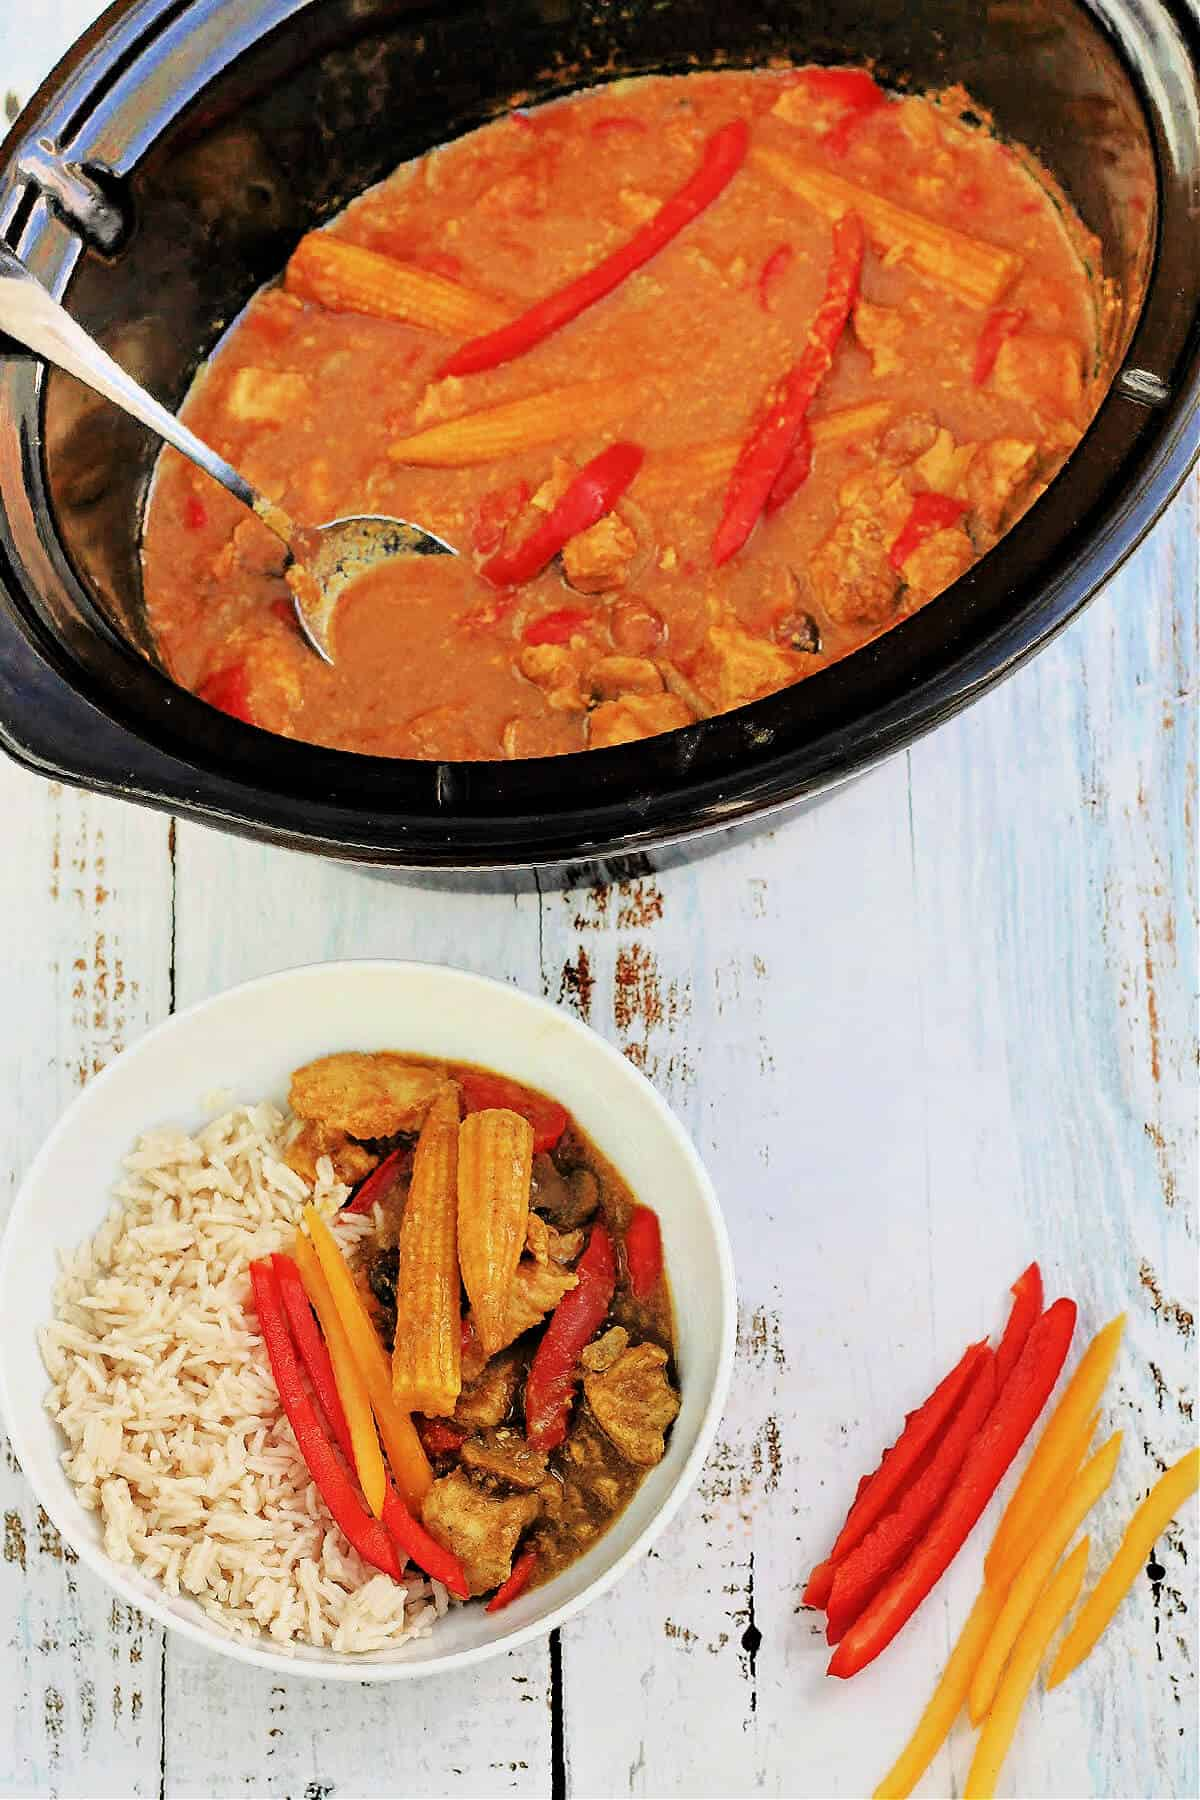 Slow cooker pot serving out Chinese curry with a bowl of curry and rice below.